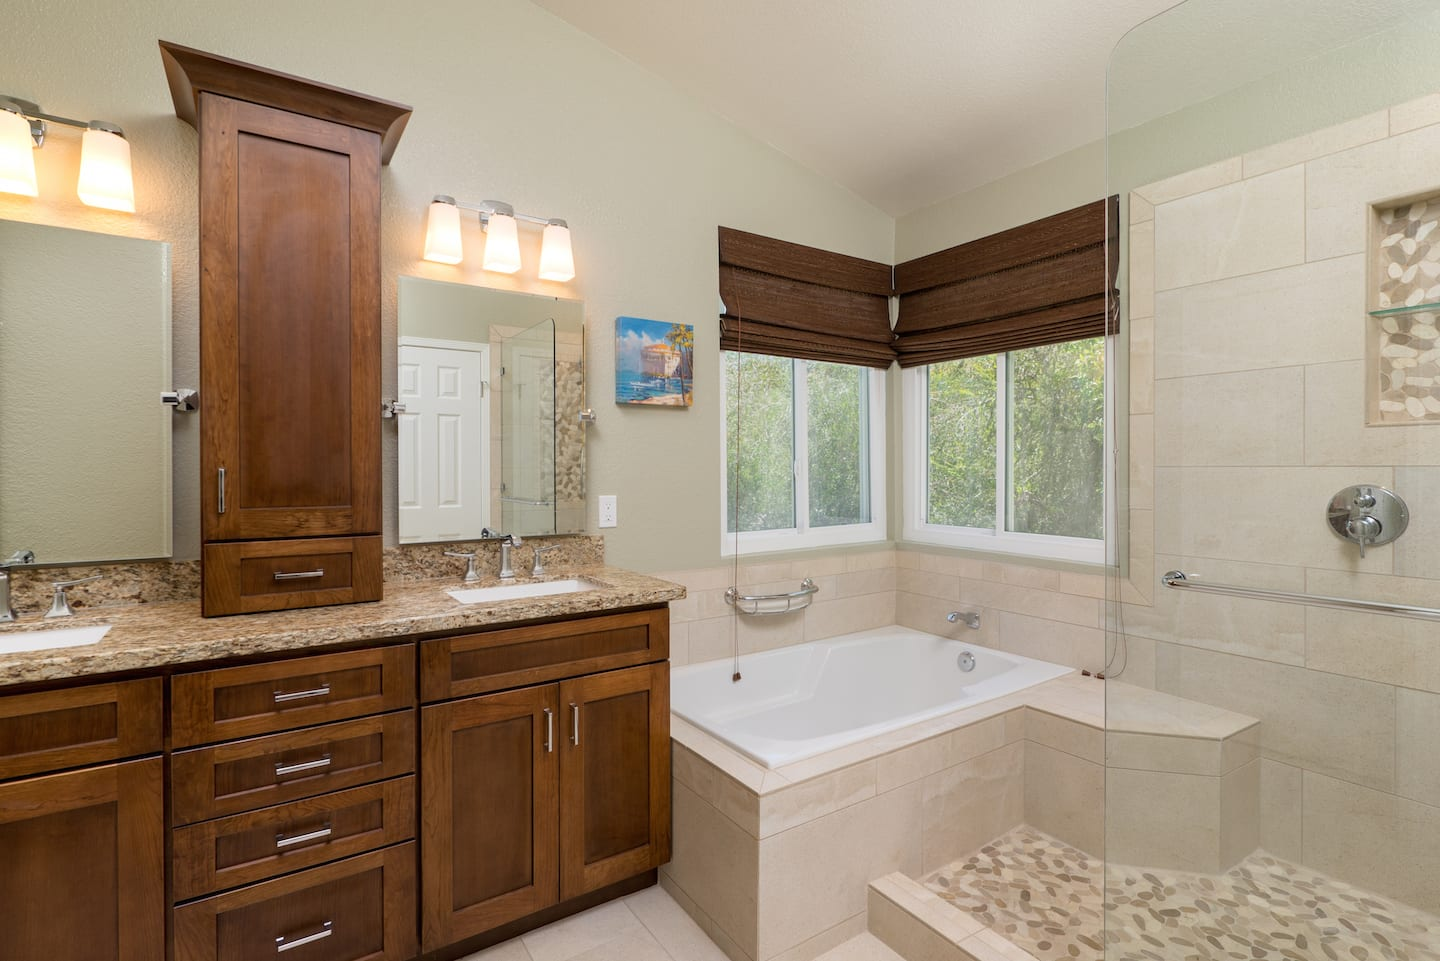 Bathroom Remodeling Planning and Hiring